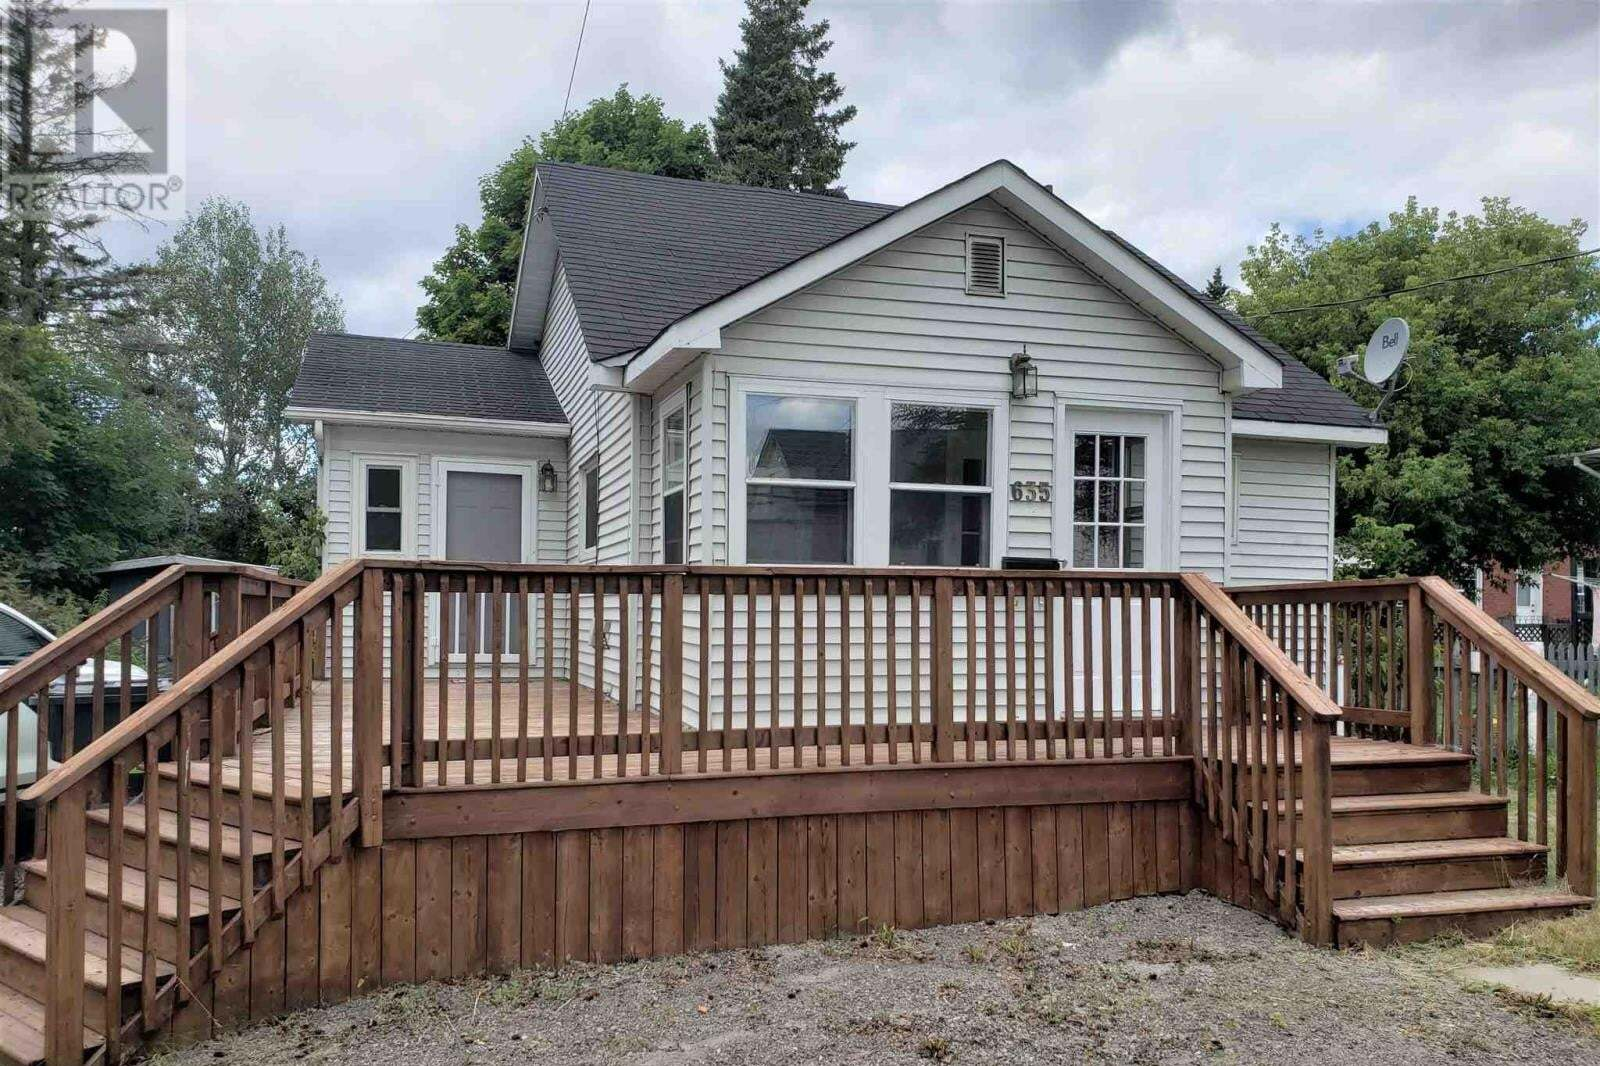 House for sale at 635 Wellington St W Sault Ste. Marie Ontario - MLS: SM129370